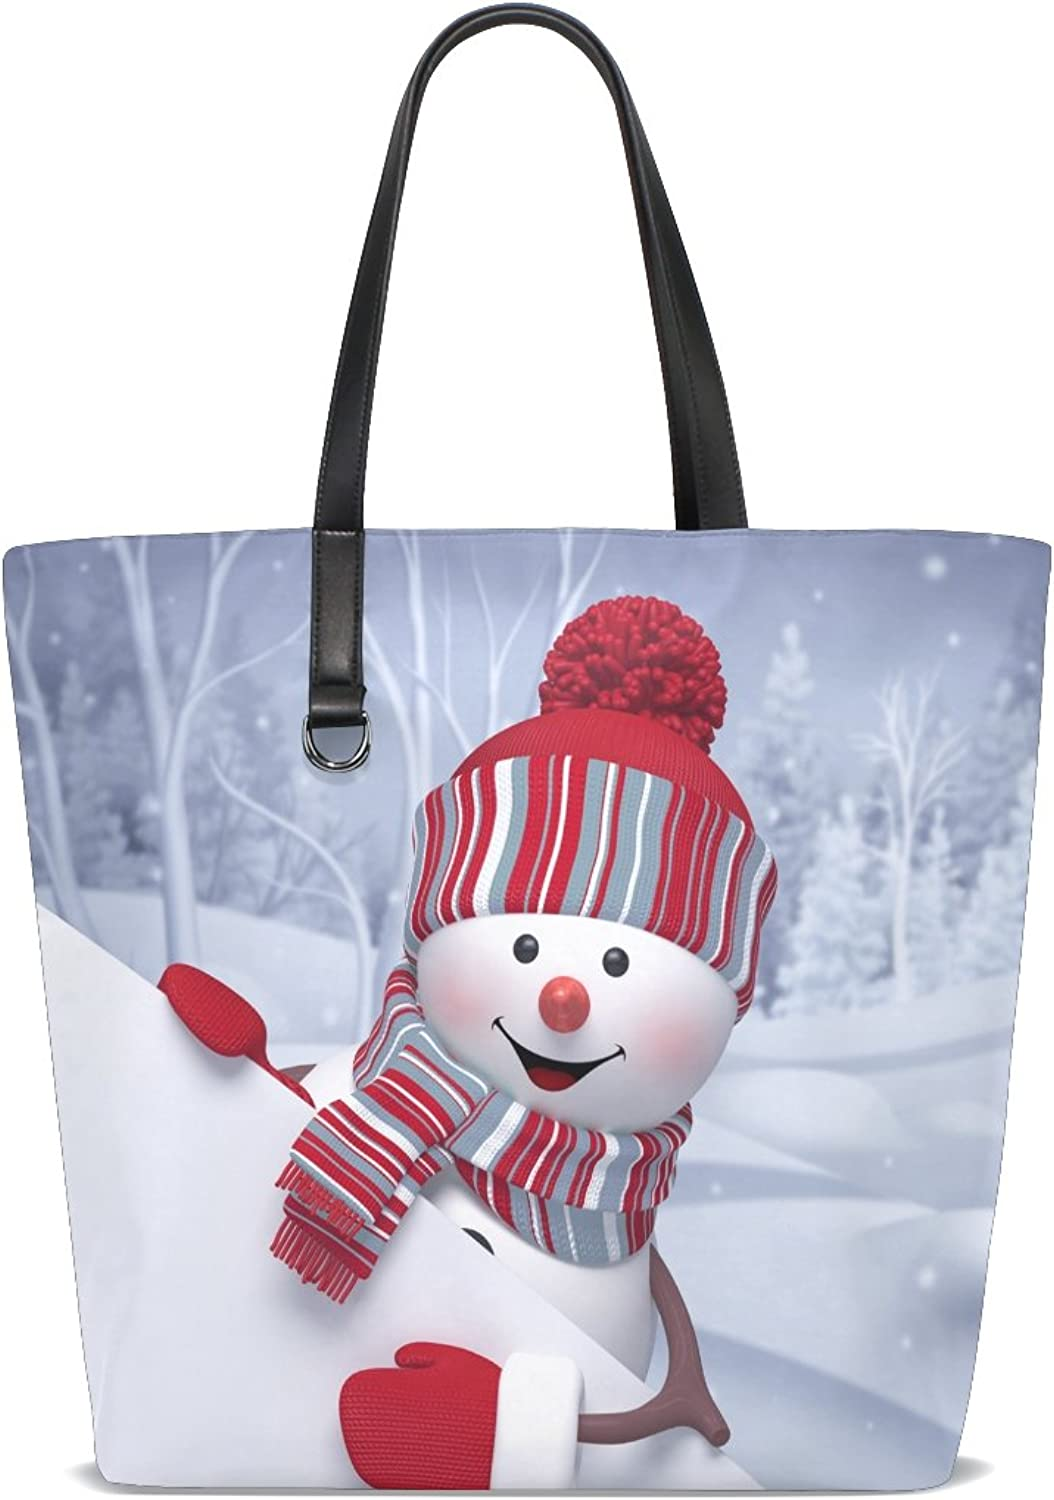 Women's Tote,Cicily Christmas Snowman Cute Stylish Lady Handbags Shoulder Bags for Teen Girls Portable bags for Shopping Washable